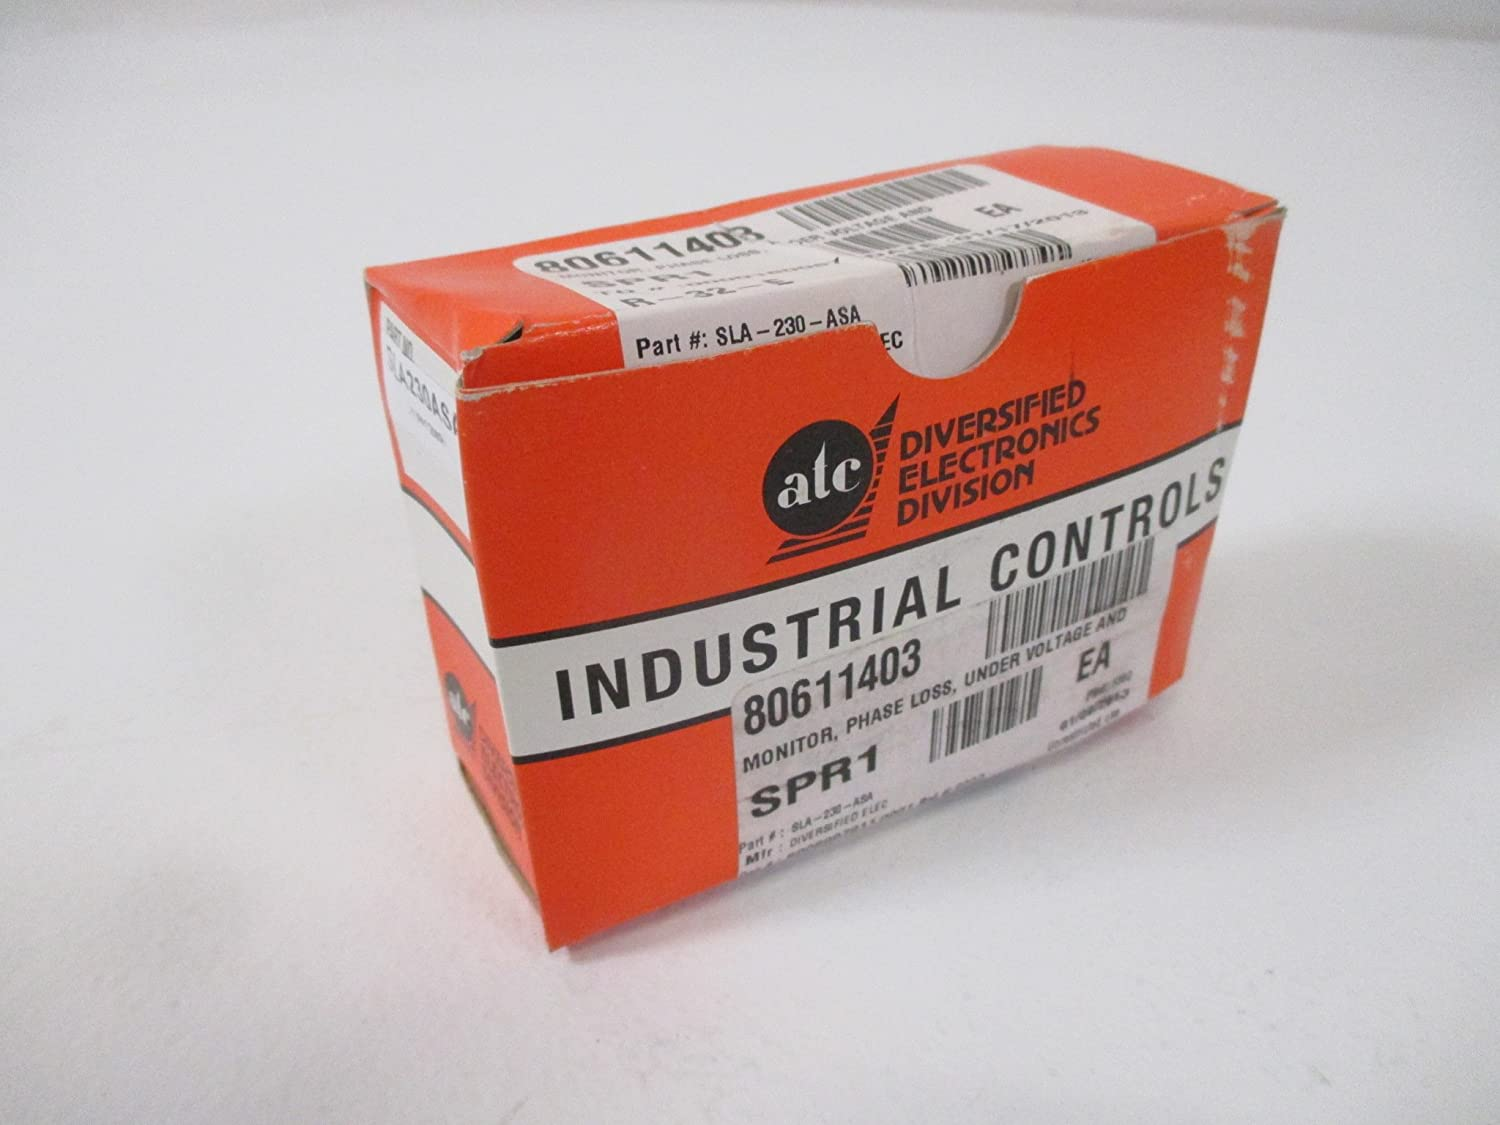 ATC SLA-230-ASA Monitor/Relay, 190-270 Adjustable Operating Voltage, Screwdriver Adjusted, Octal Plug-in, Dust Cover